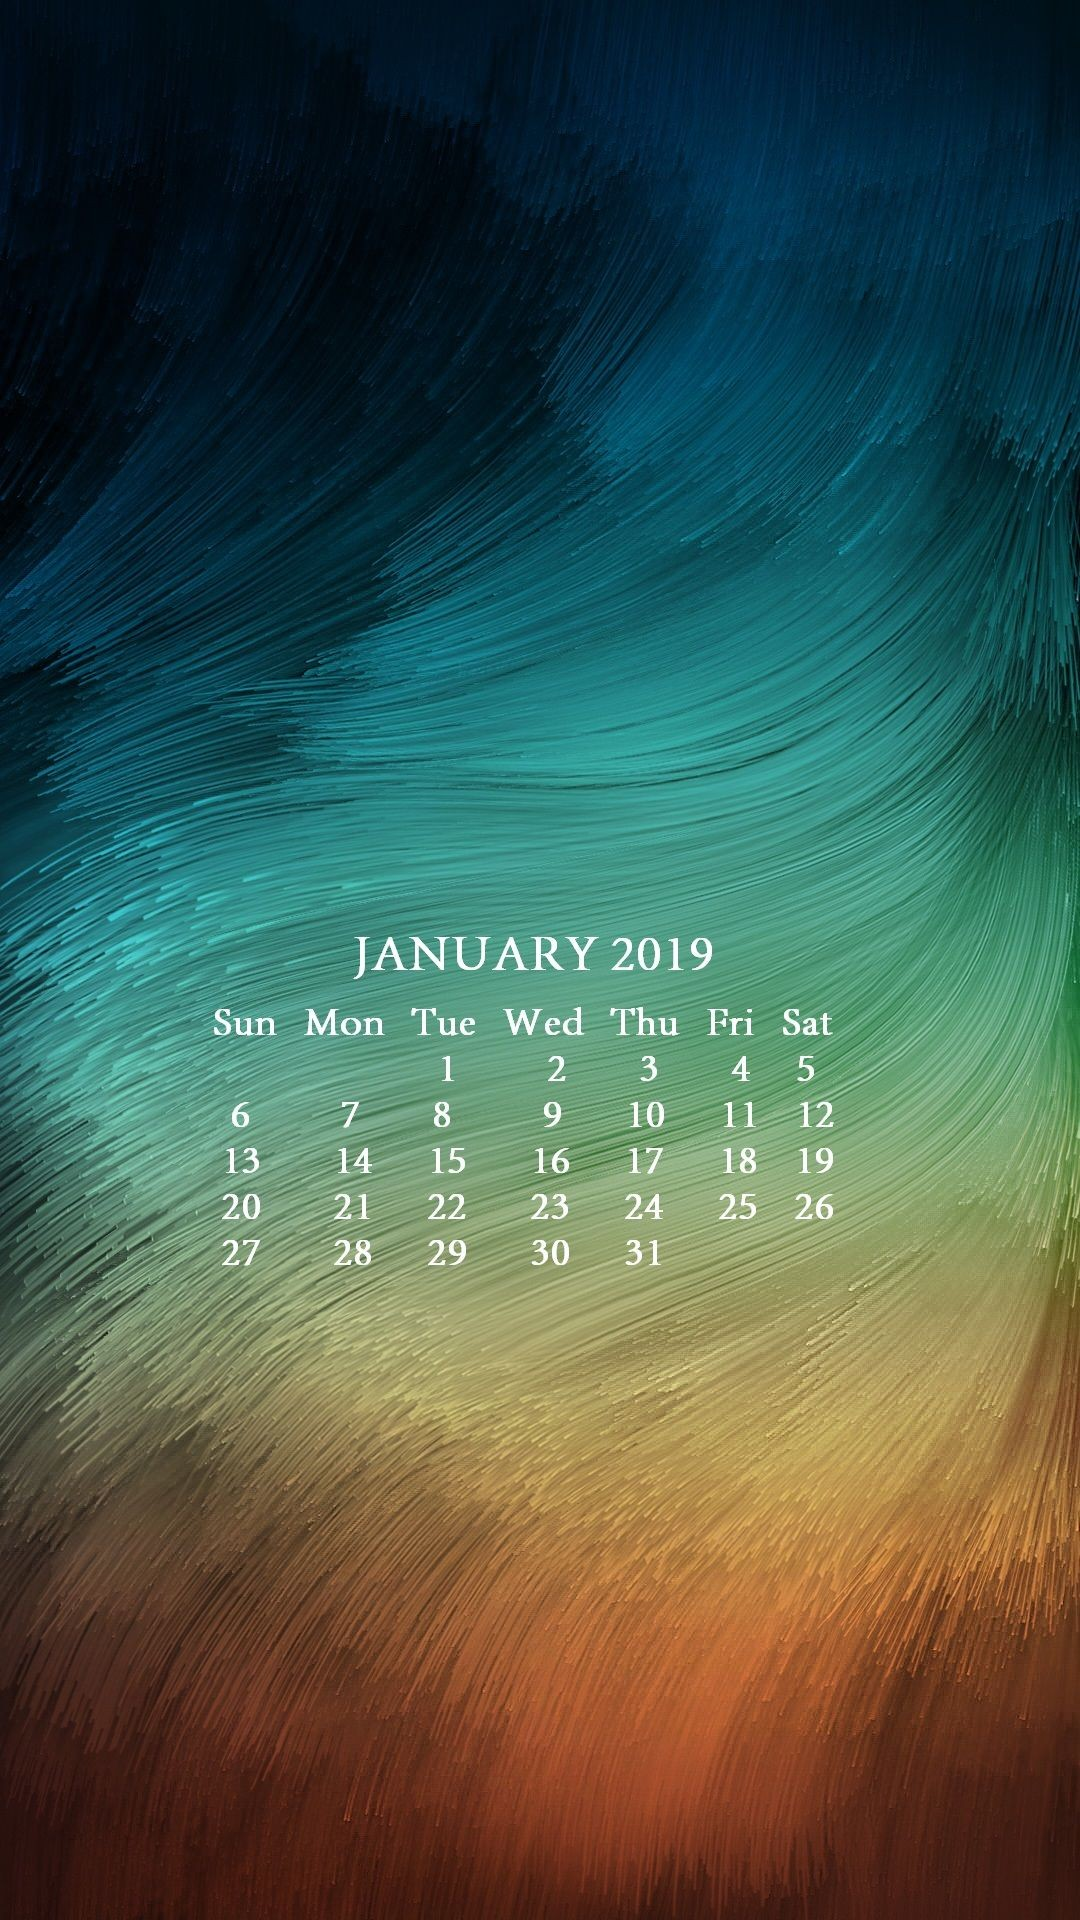 January 2019 Calendar Wallpapers Free Download HD Quality